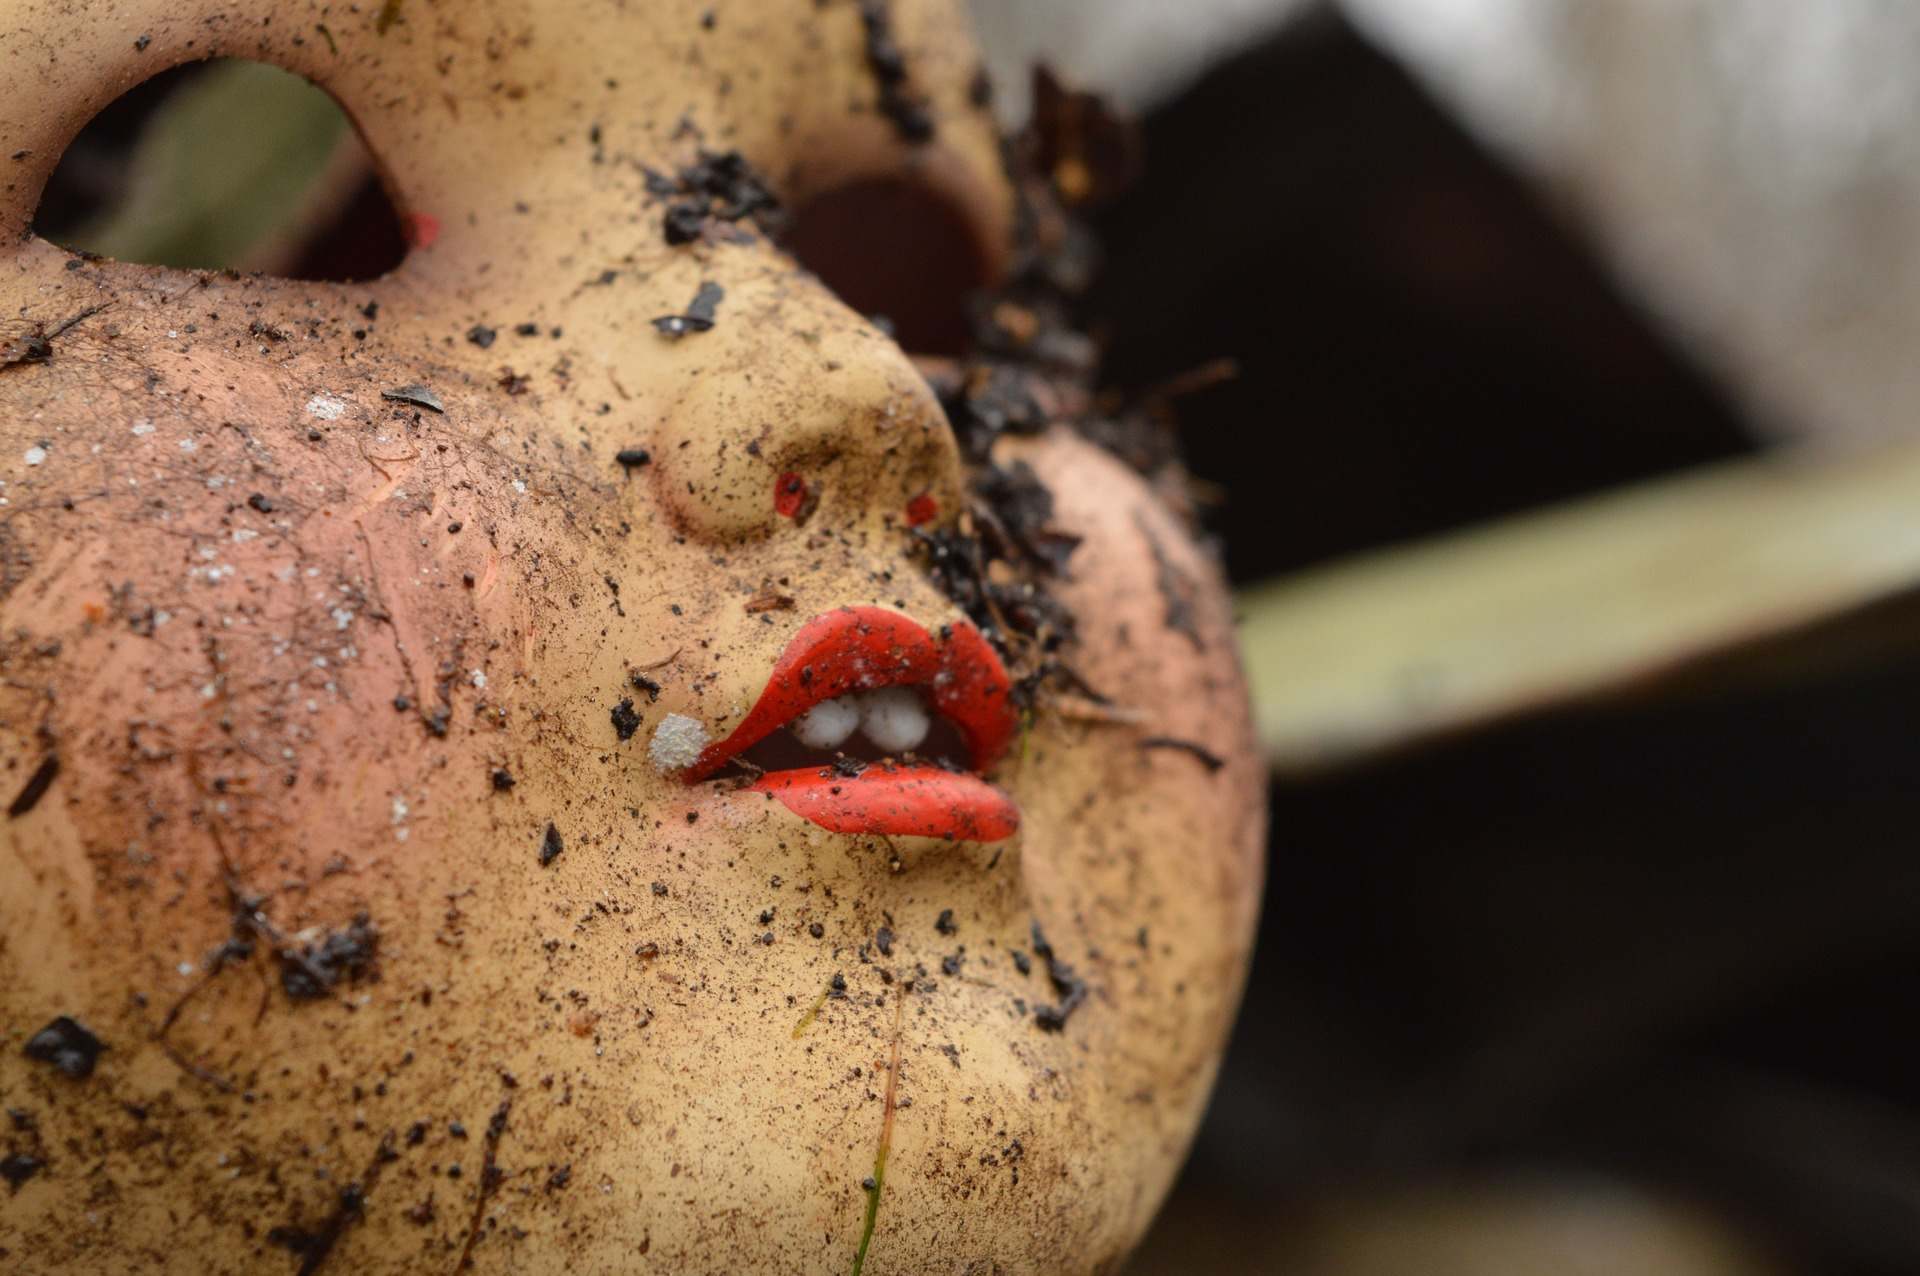 Face of doll soiled with garden dirt.